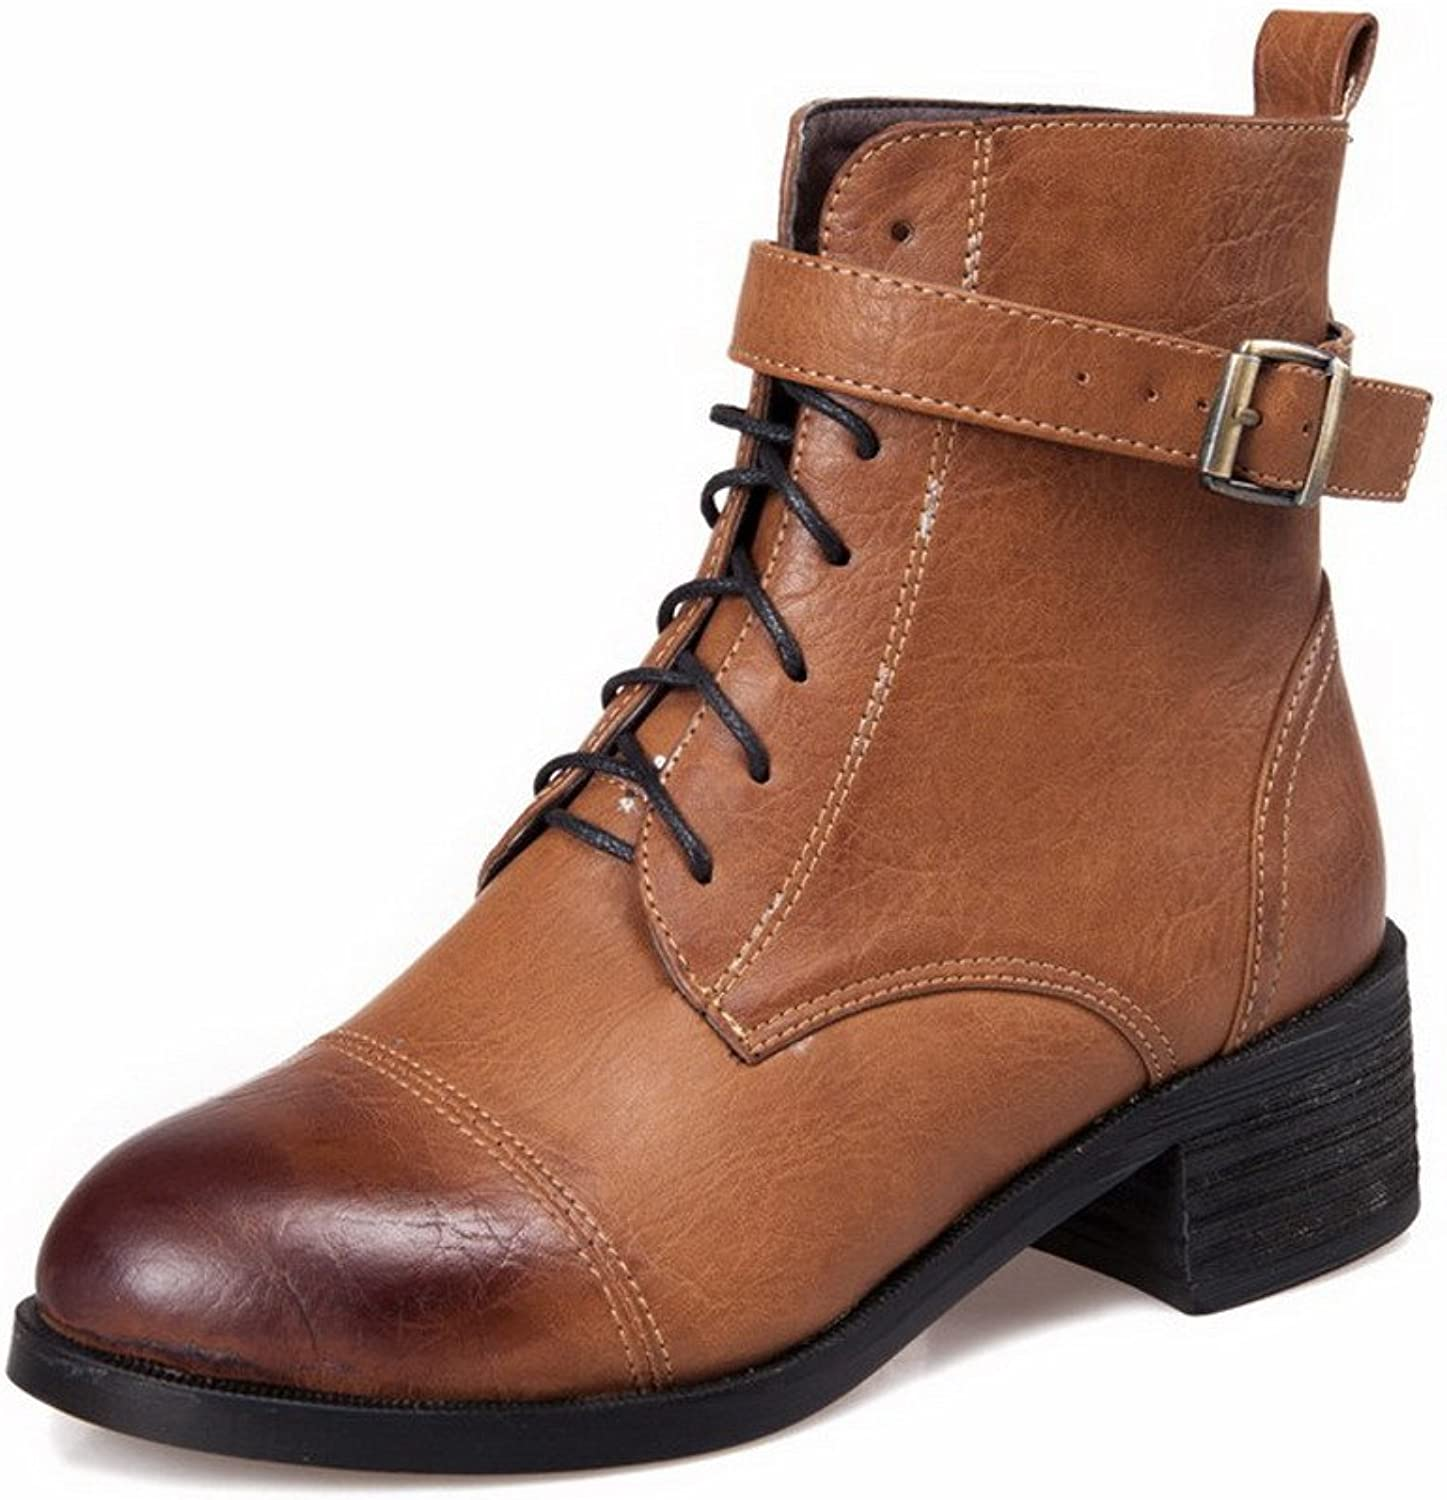 AllhqFashion Women's Lace-up Round Closed Toe Kitten-Heels PU Low-top Boots